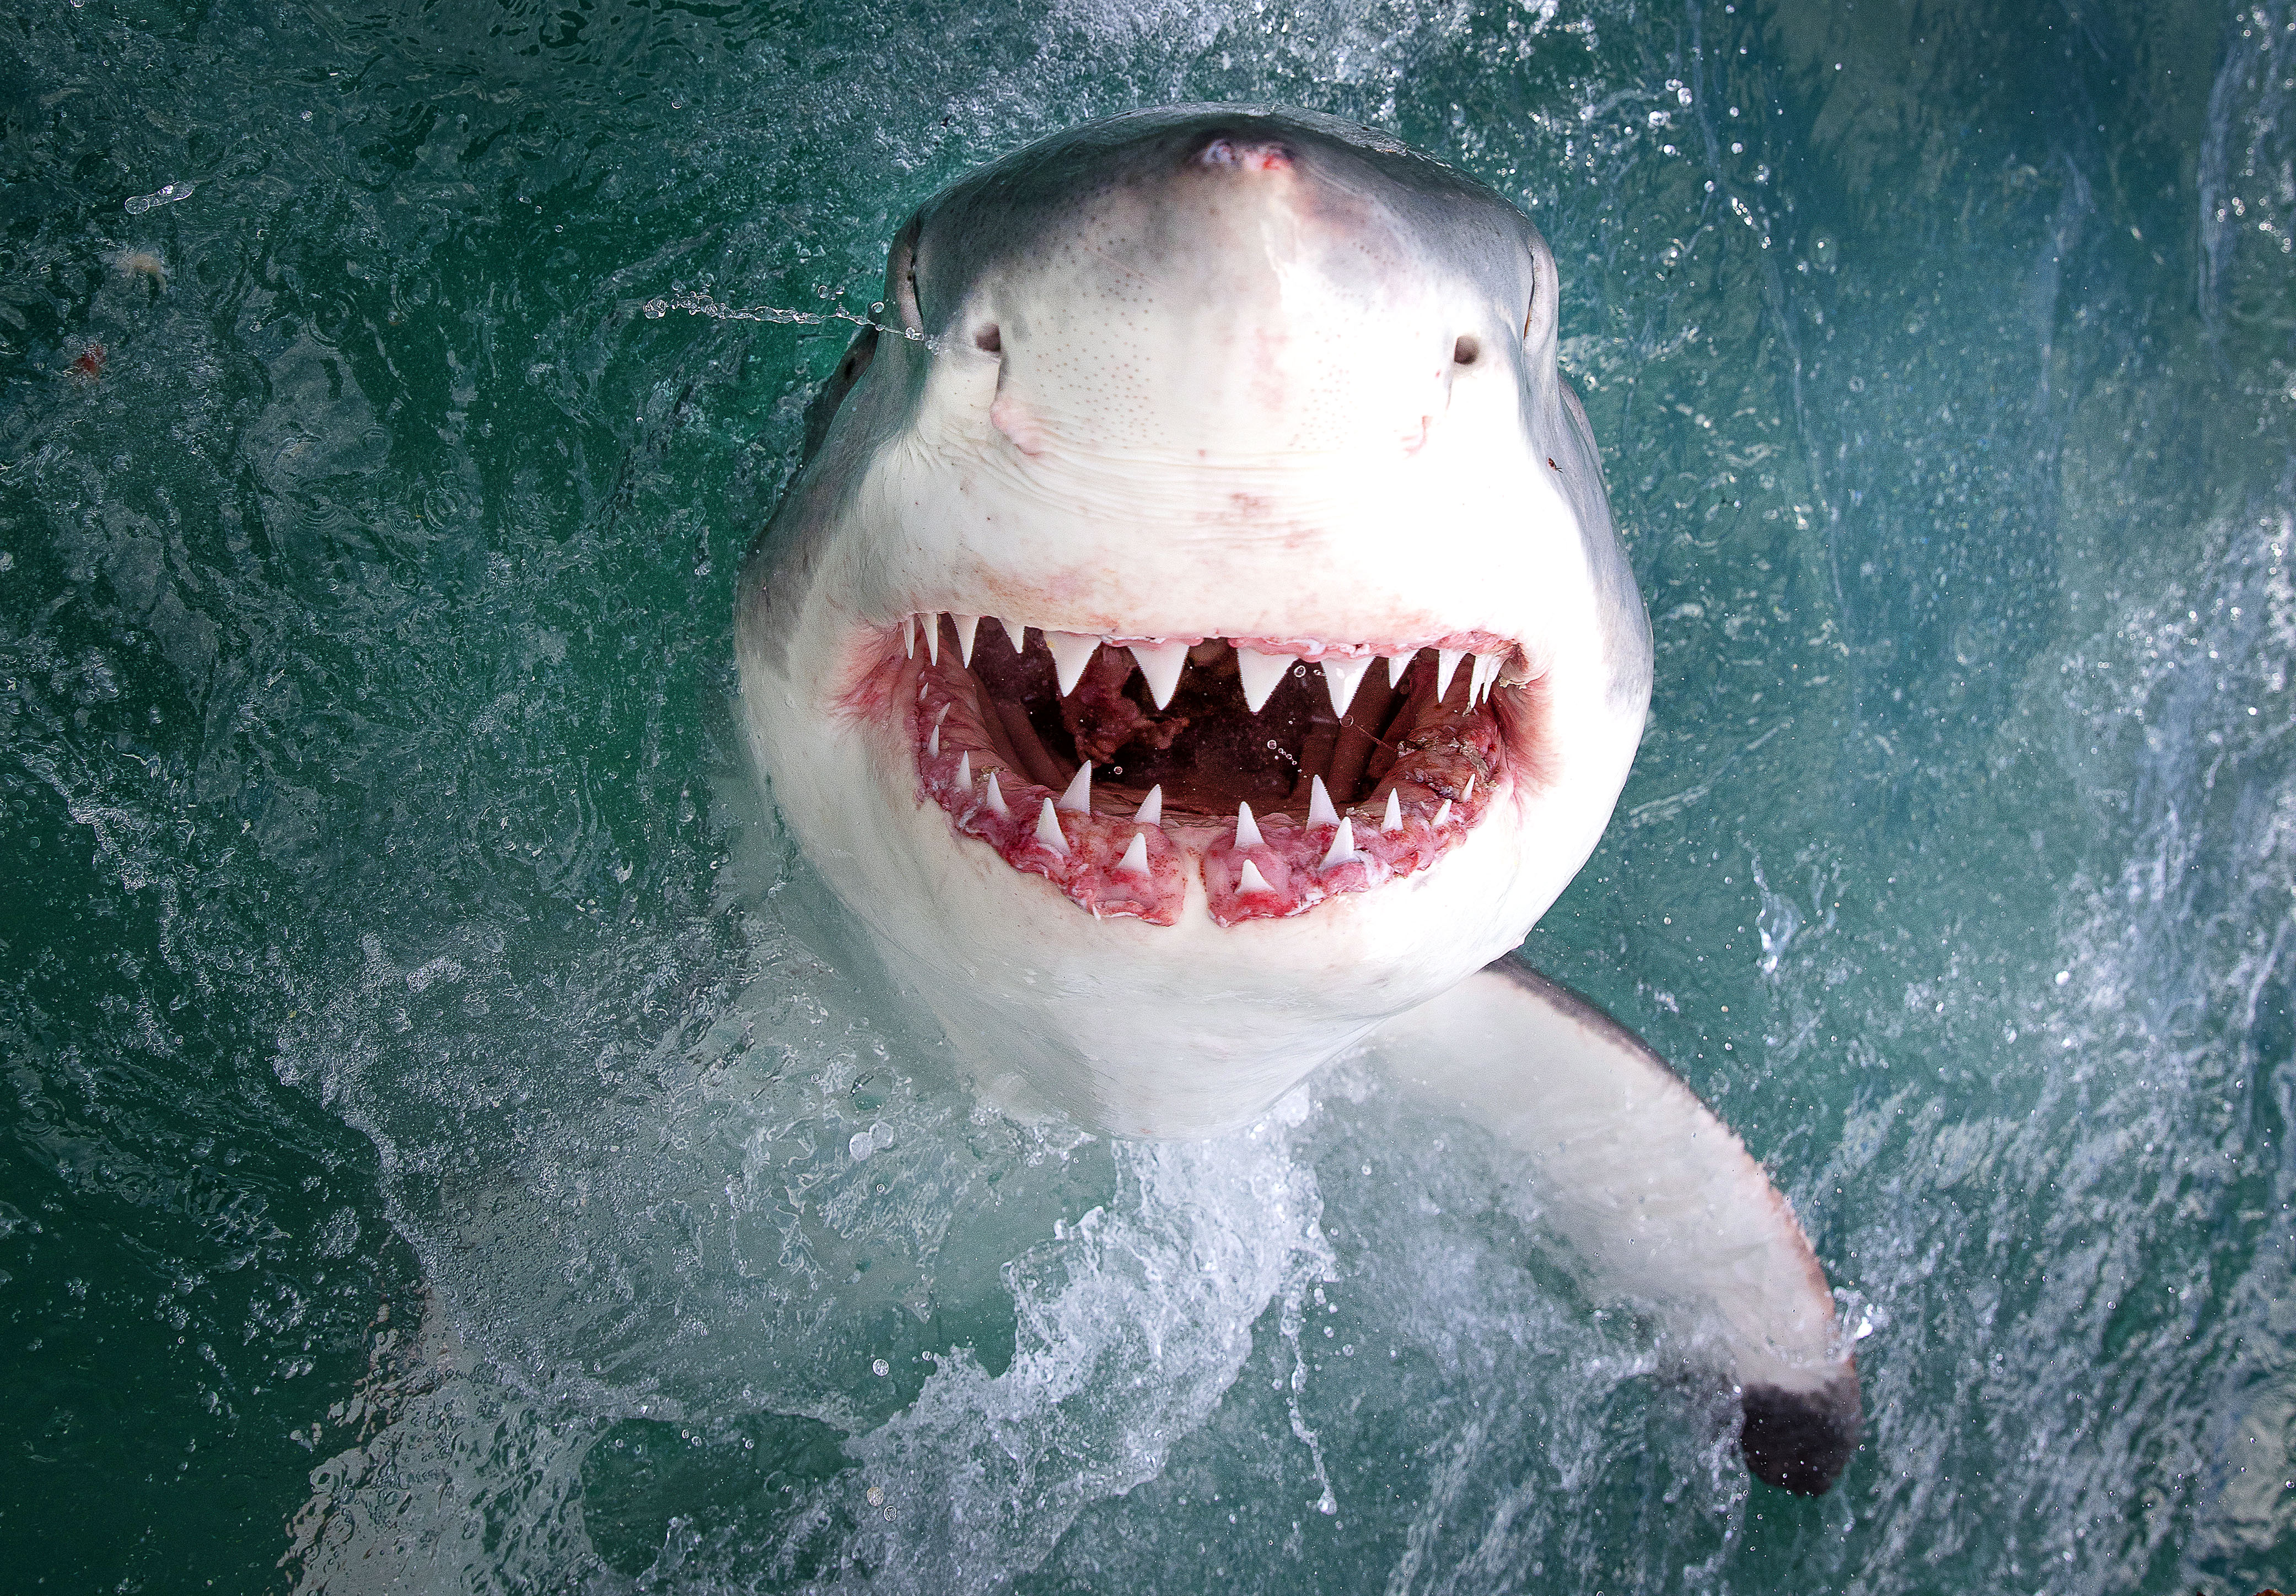 Jaw-some shark shows off its gnashers to camera - Caters